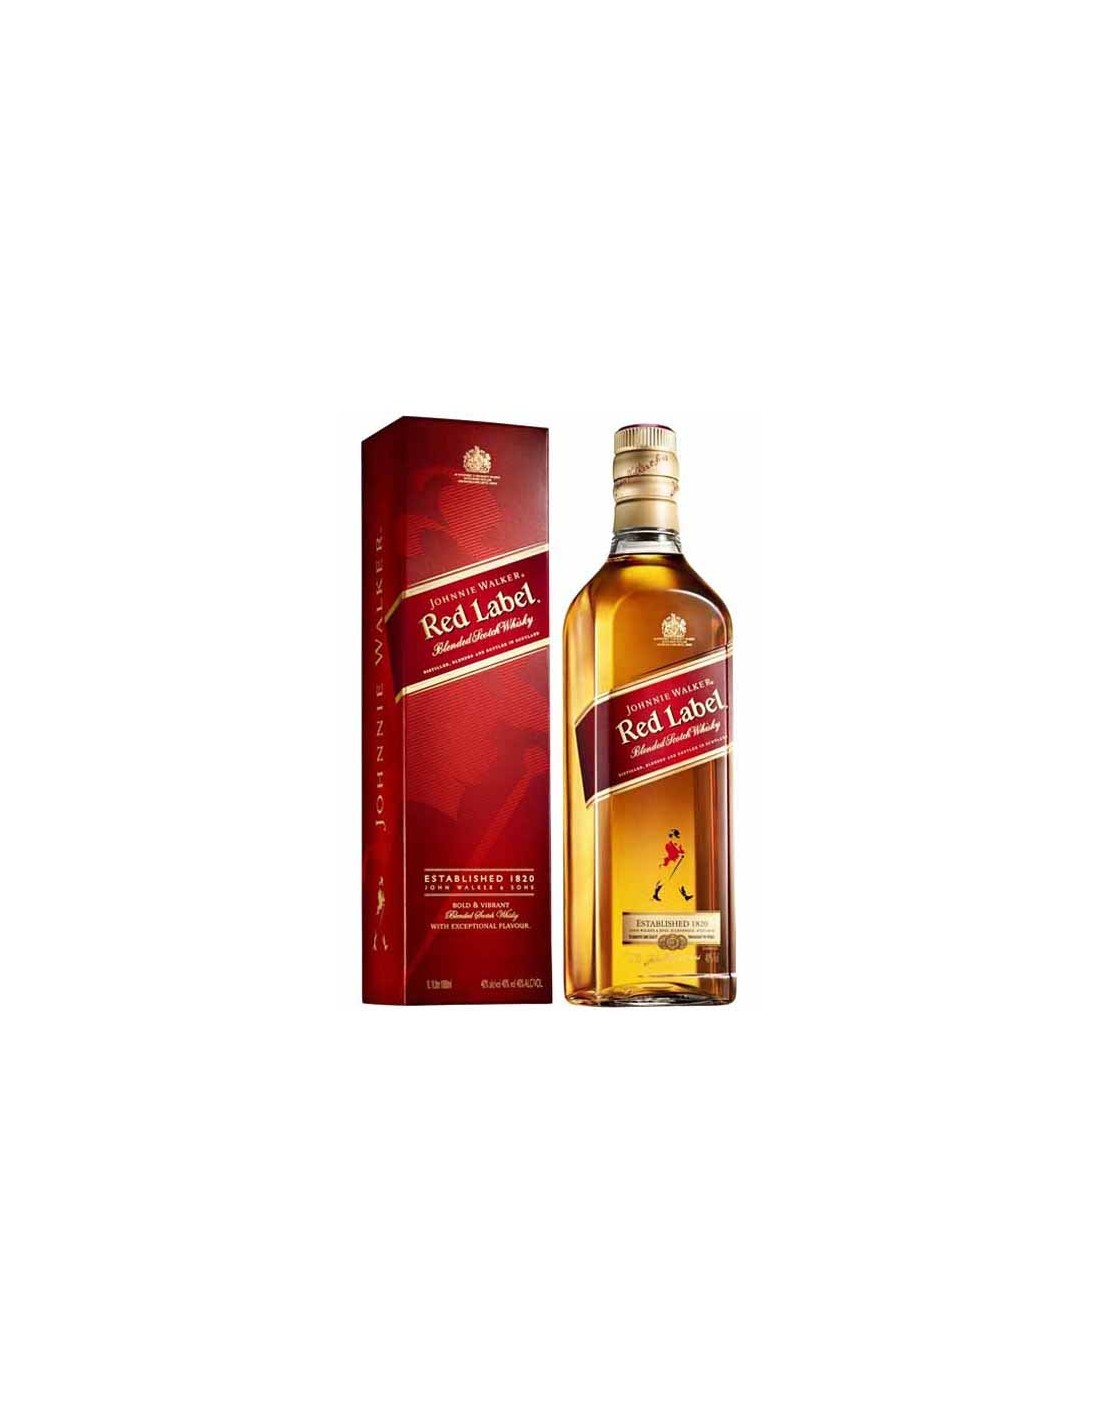 Whisky Johnnie Walker Red Label, 40% alc., 1L, cutie, Scotia